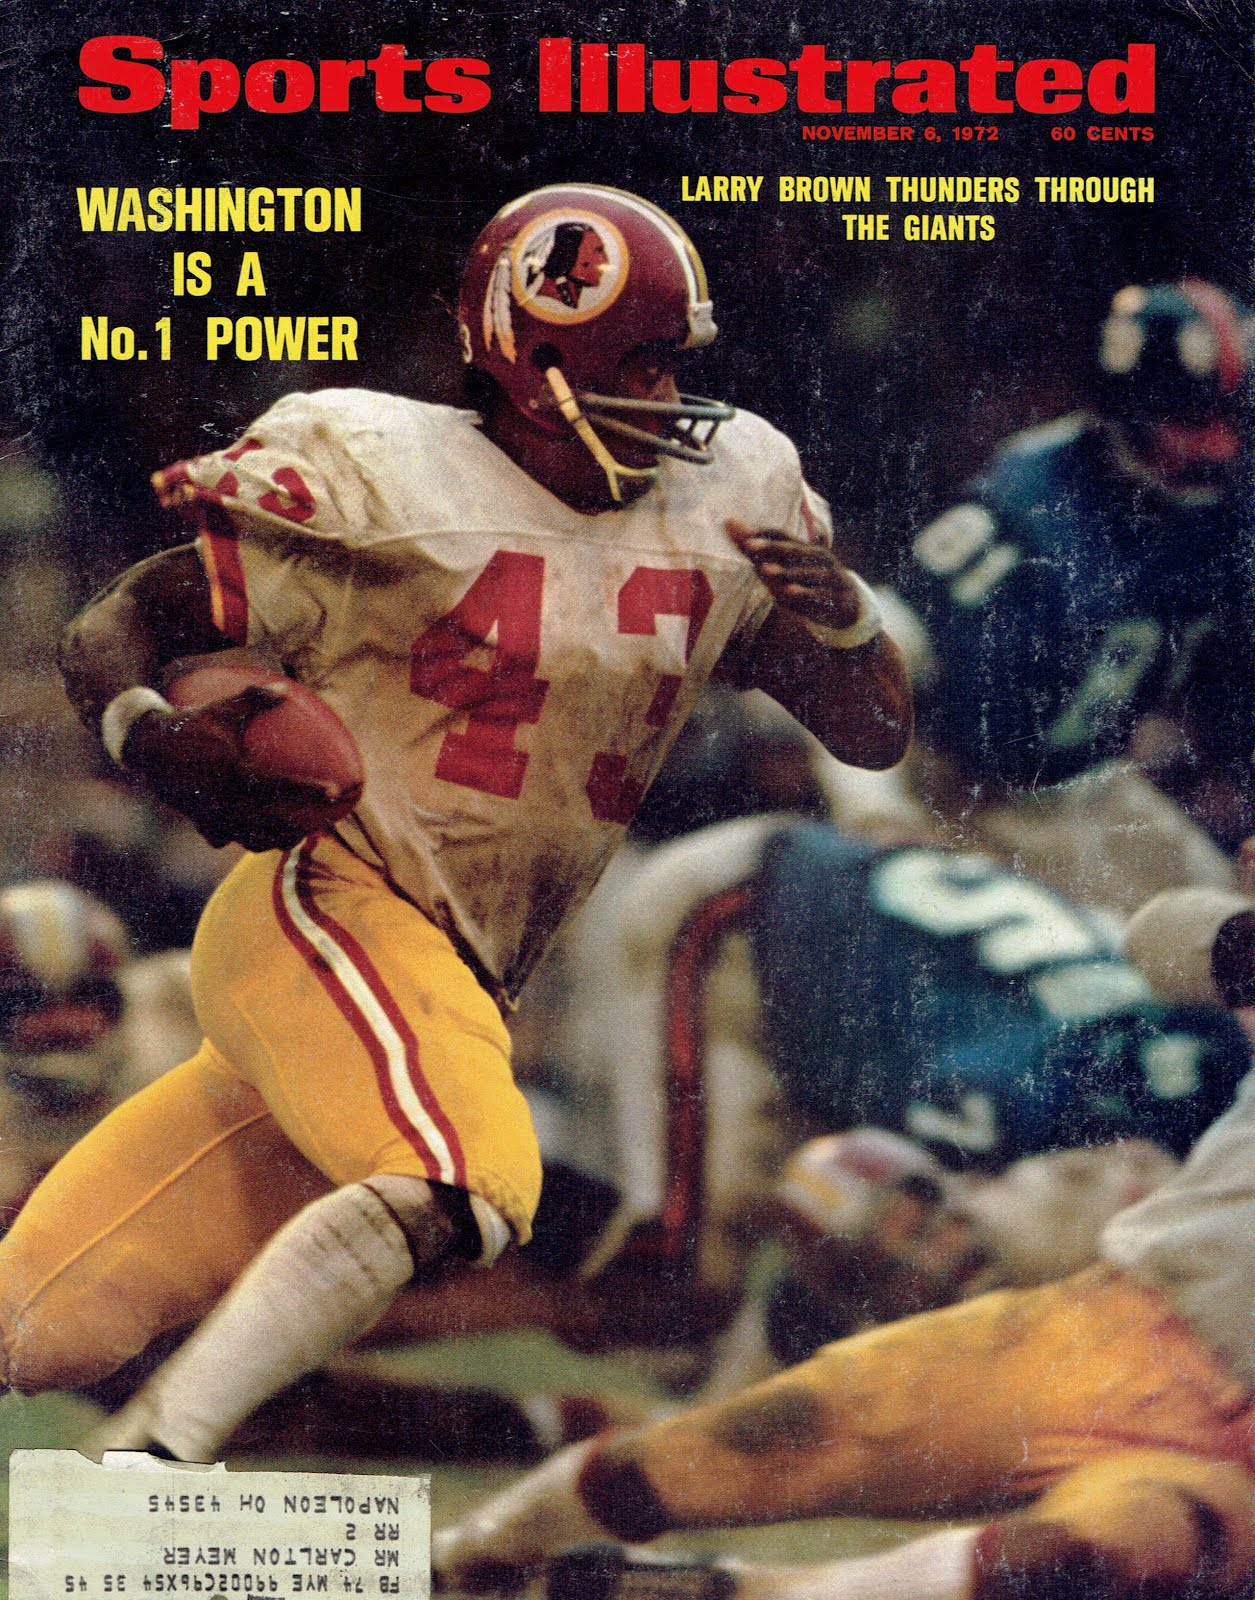 COVER 1972 SPORTS ILLUSTRATED